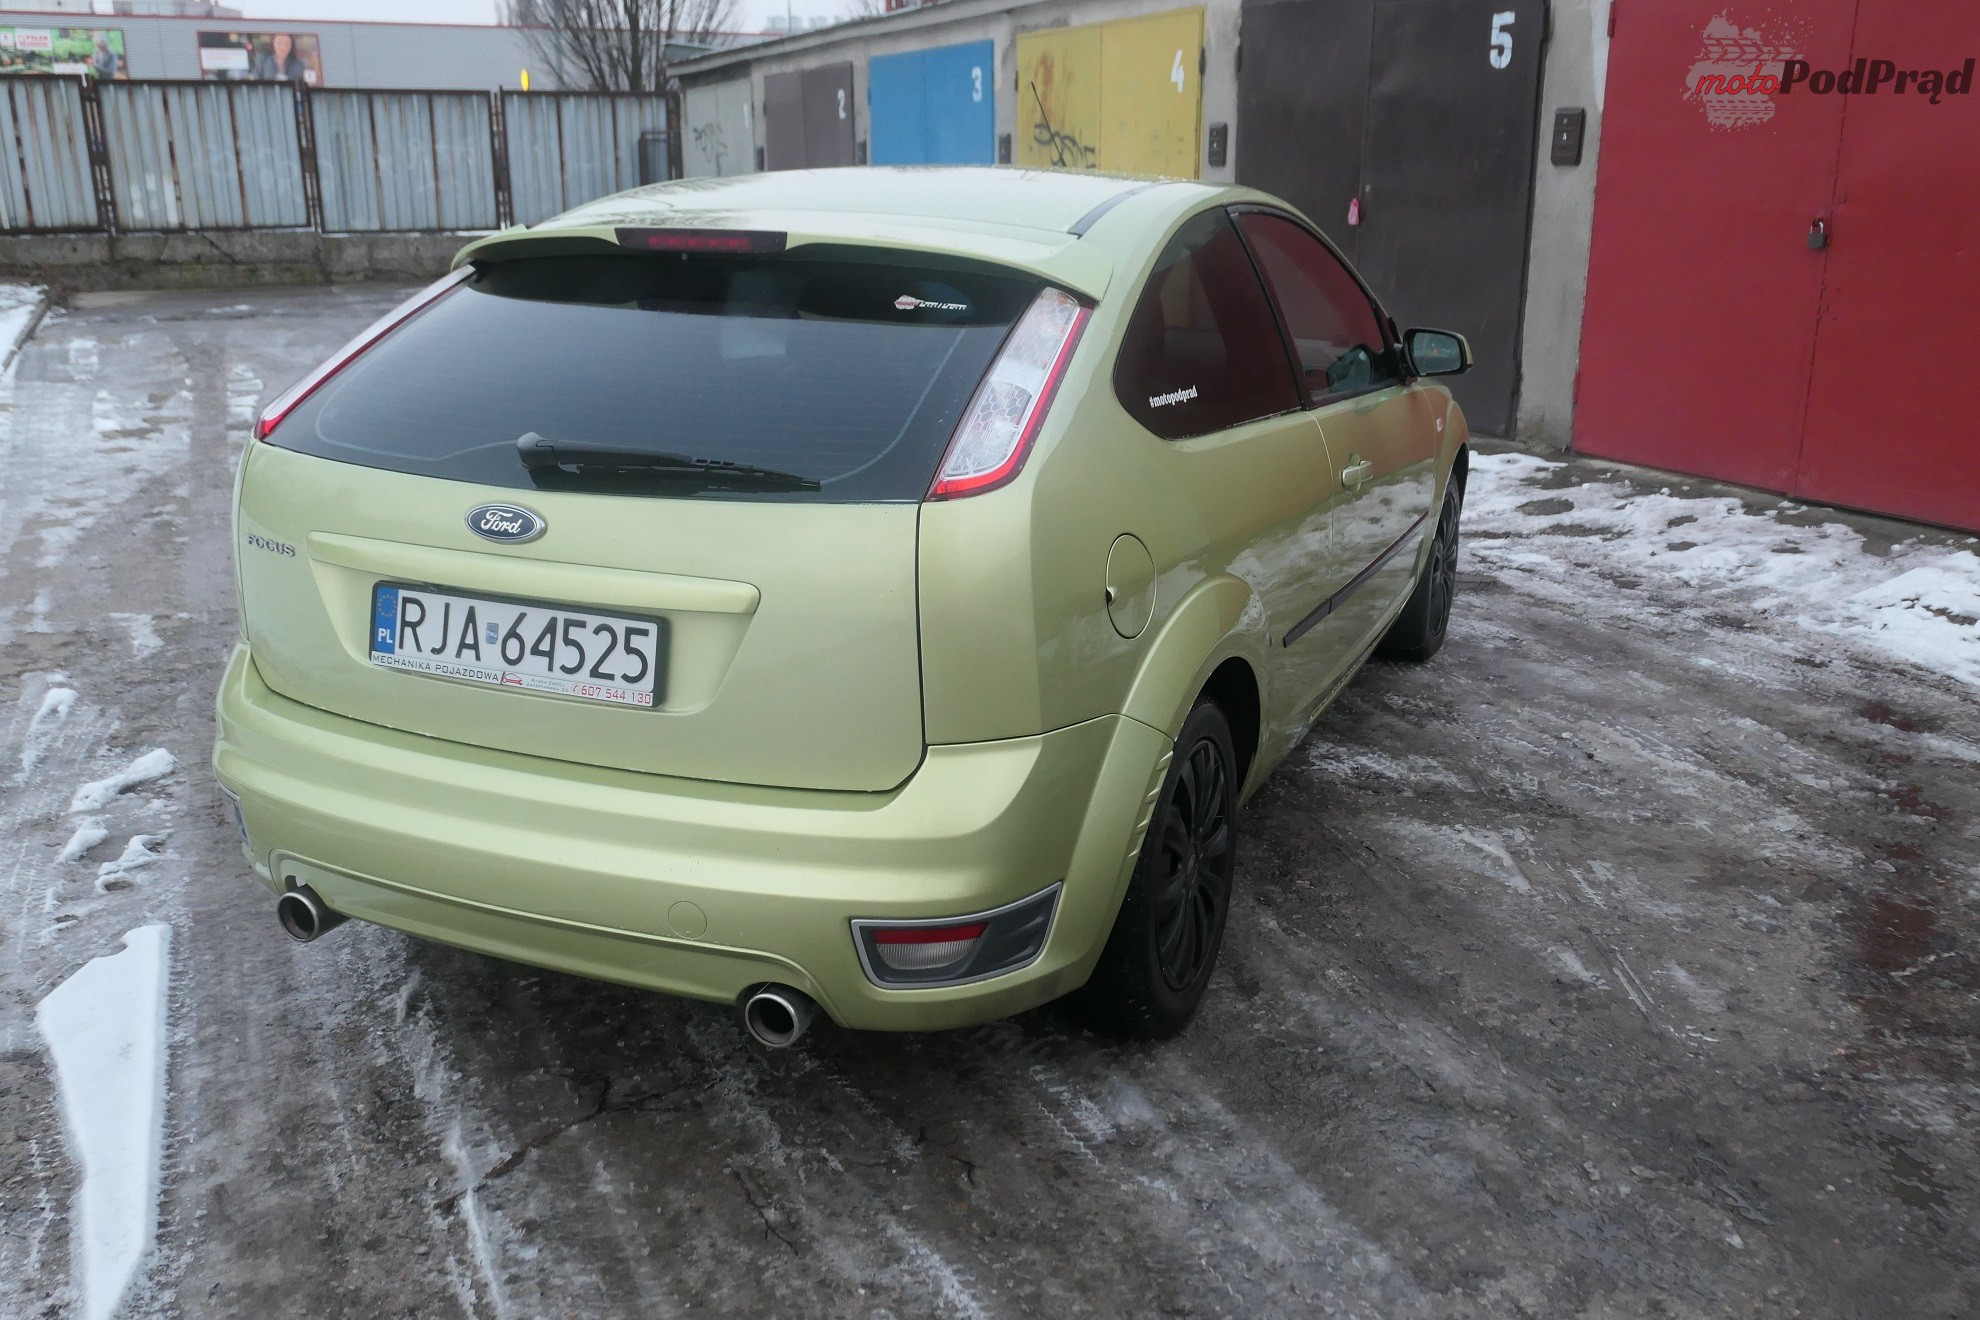 Ford Focus 11 Test: Ford Focus Mk2 2.0 145 KM   jak limonka